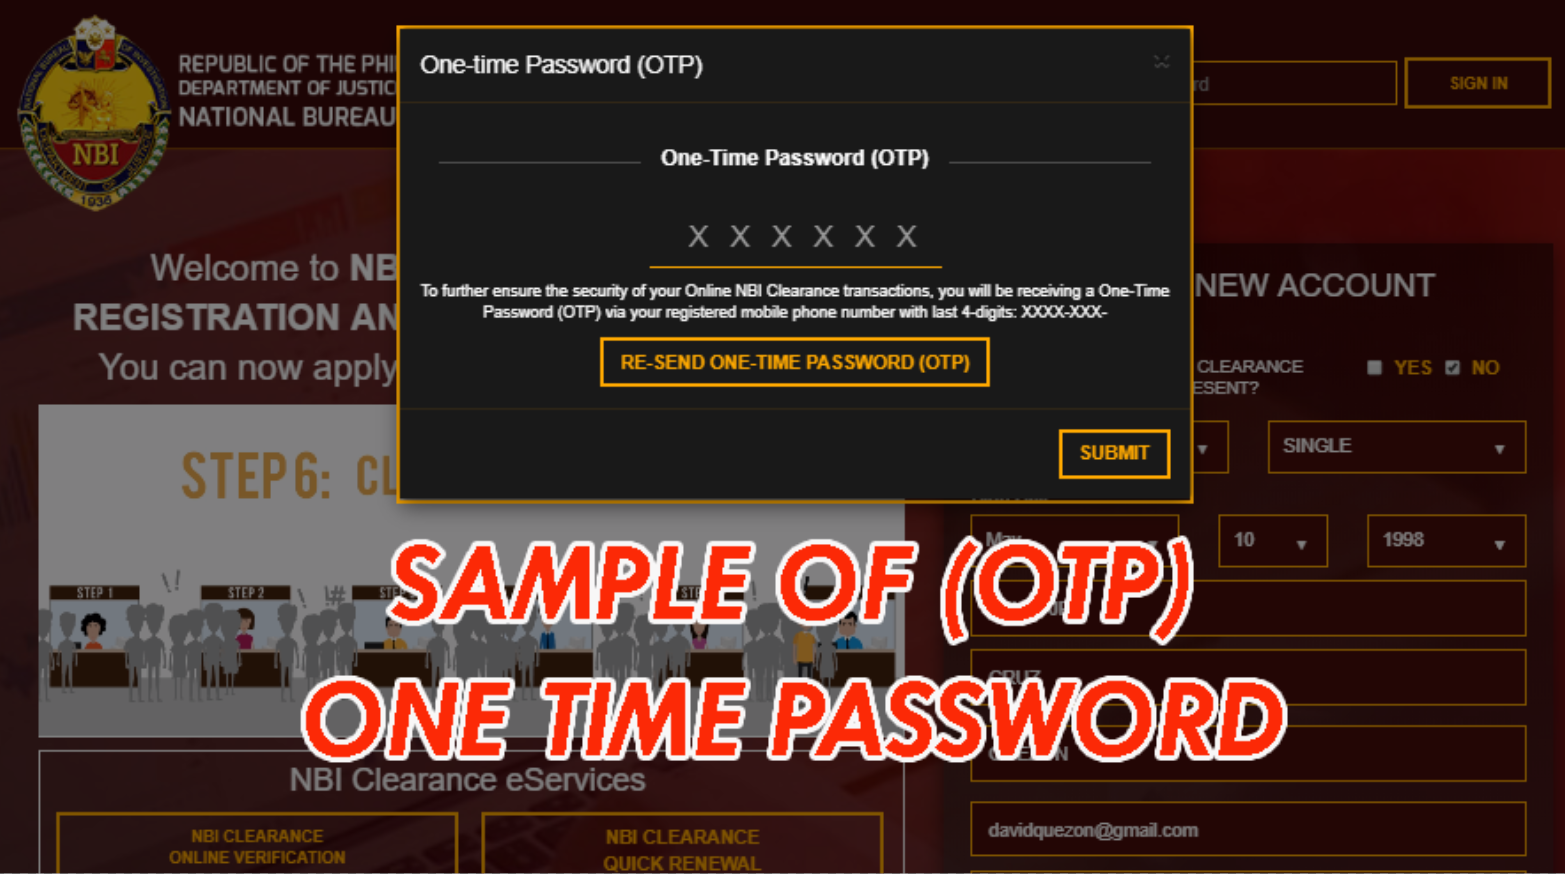 OTP FOR NBI CLEARANCE ONLINE APPLICATION FOR 2020 nbi clearance online NBI CLEARANCE ONLINE APPLICATION FOR 2020 SAMPLE OF OTP ONE TIME PASSWORD